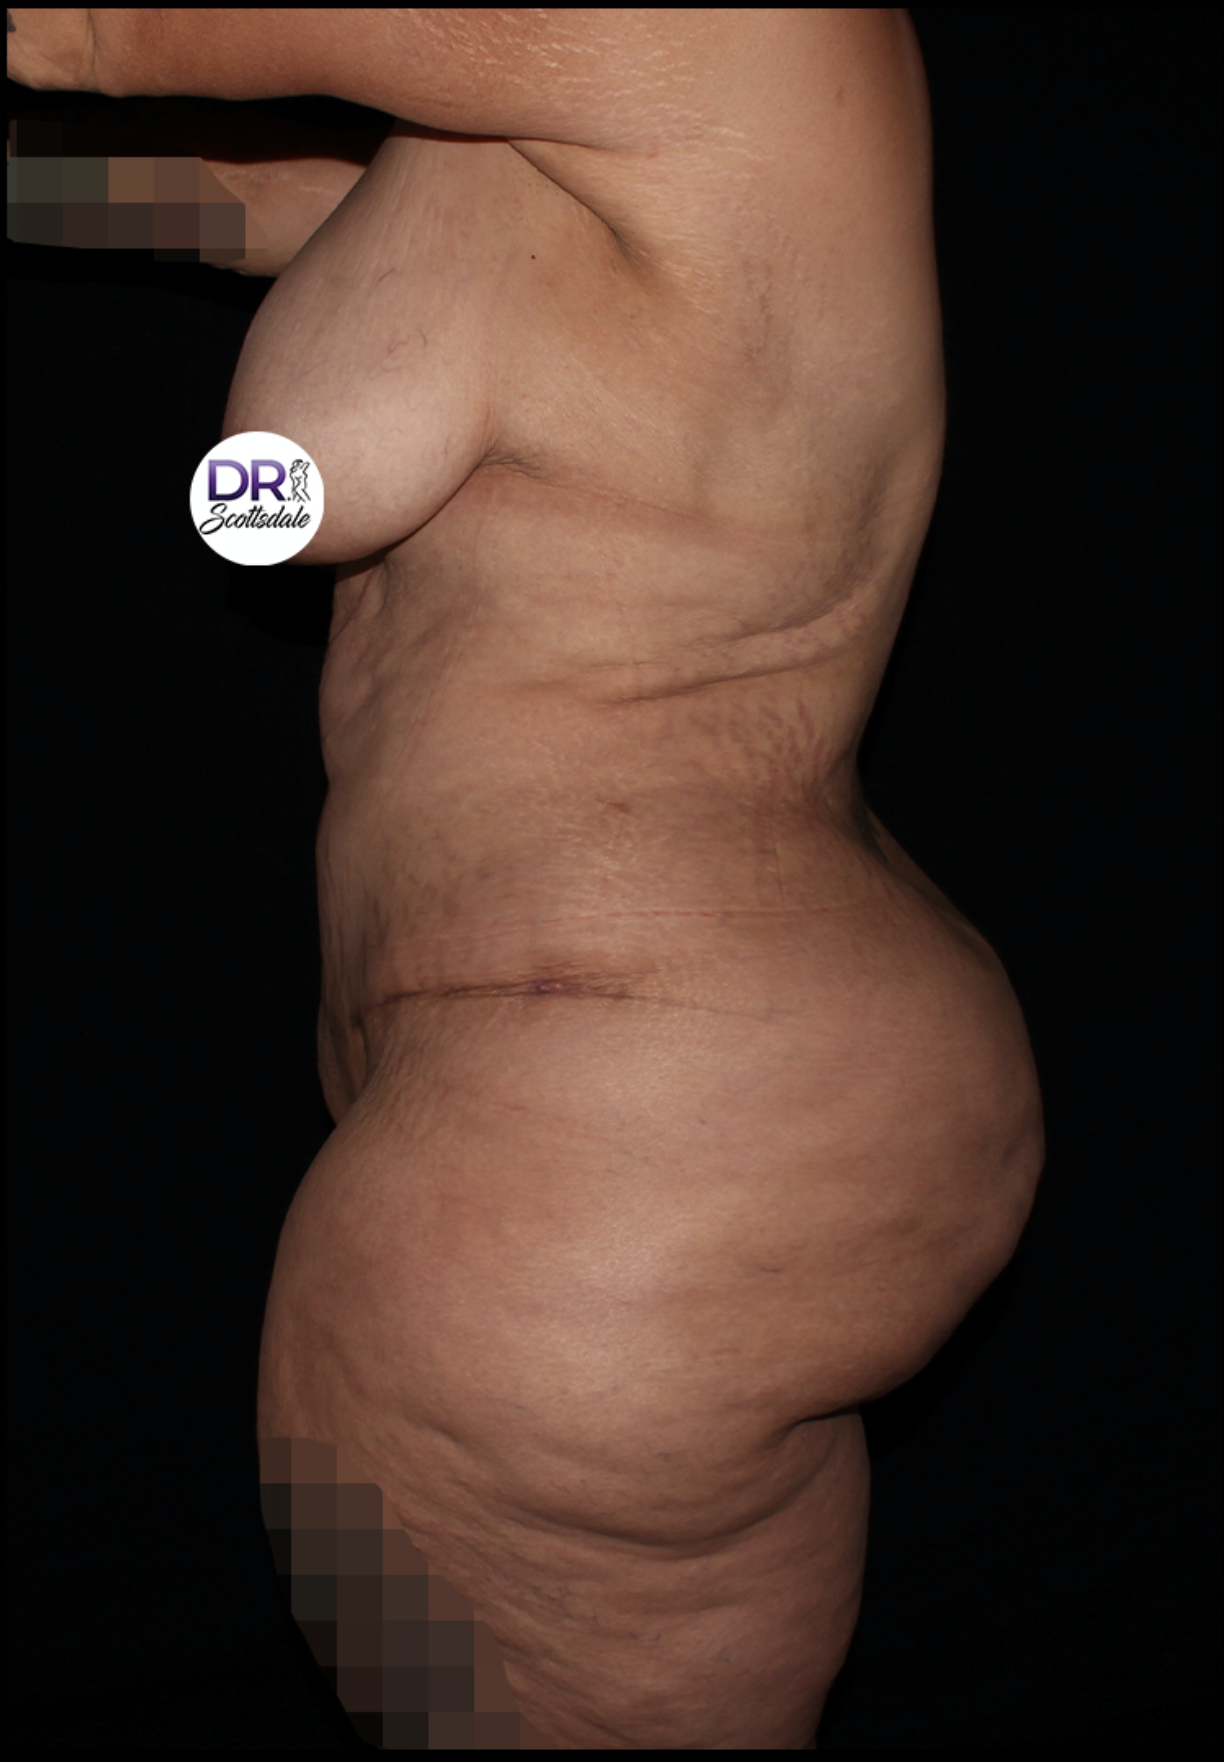 After After Weight Loss Surgery - Major Weight Loss Surgery